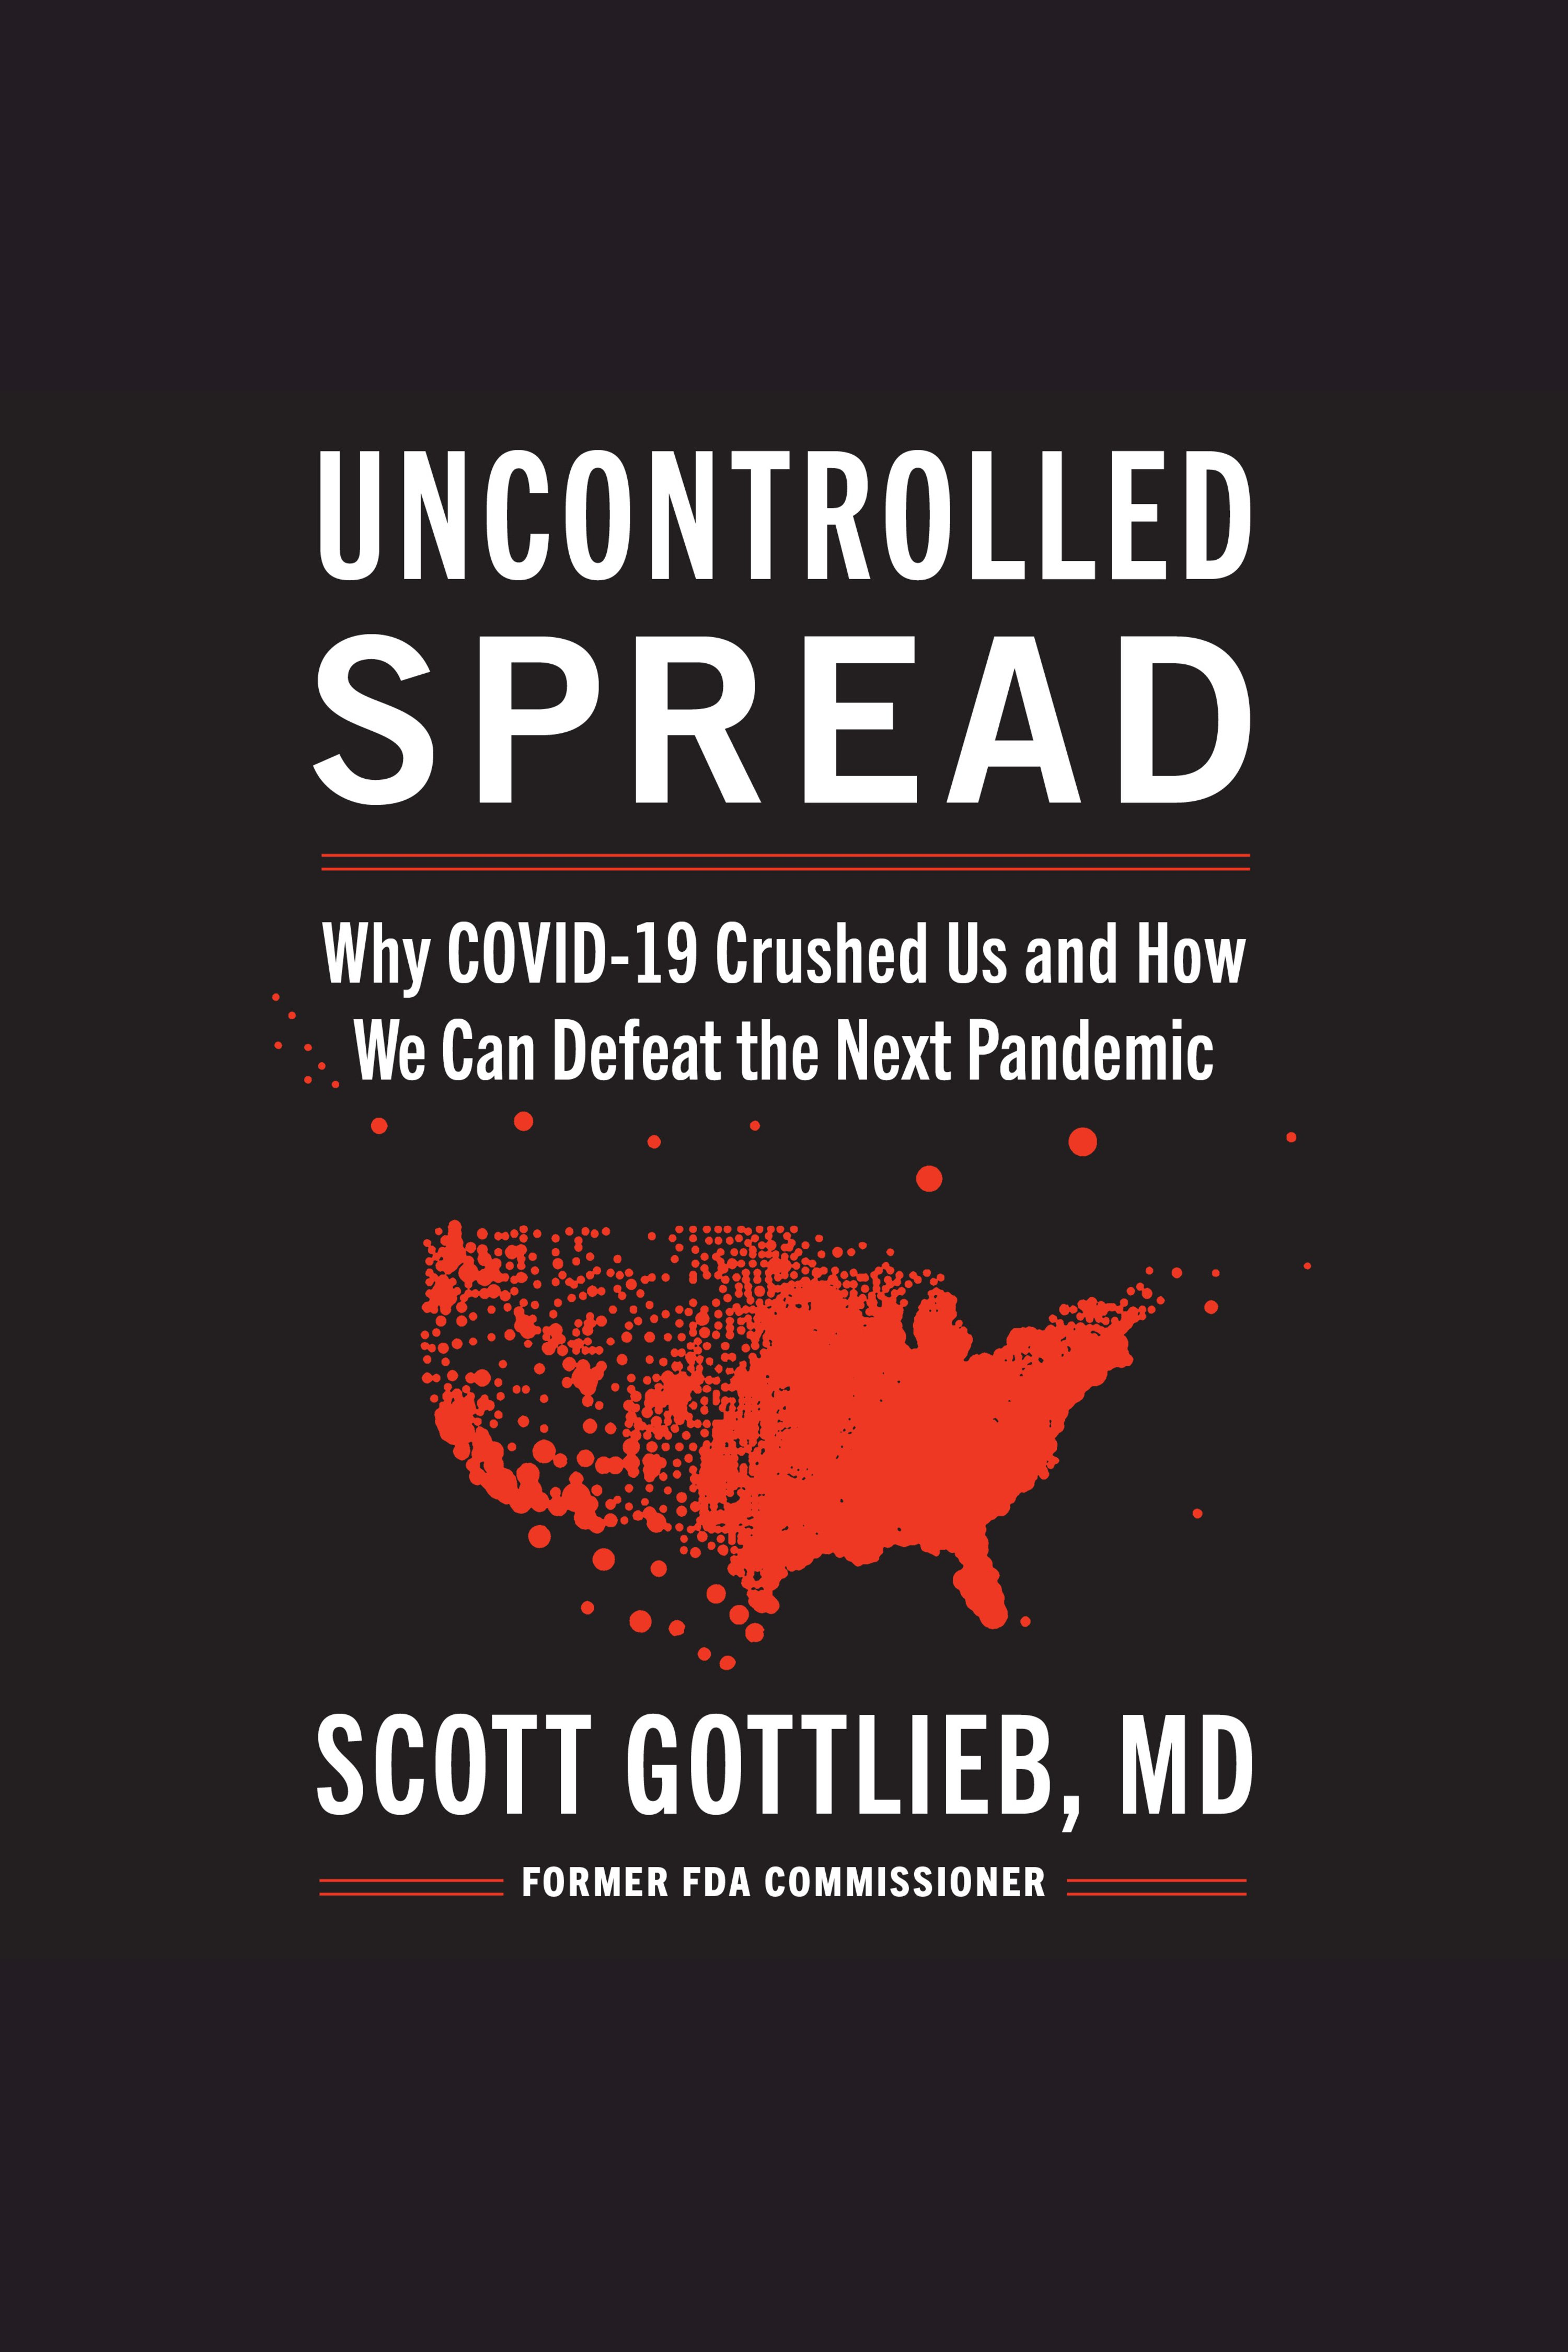 Uncontrolled Spread Why COVID-19 Crushed Us and How We Can Defeat the Next Pandemic